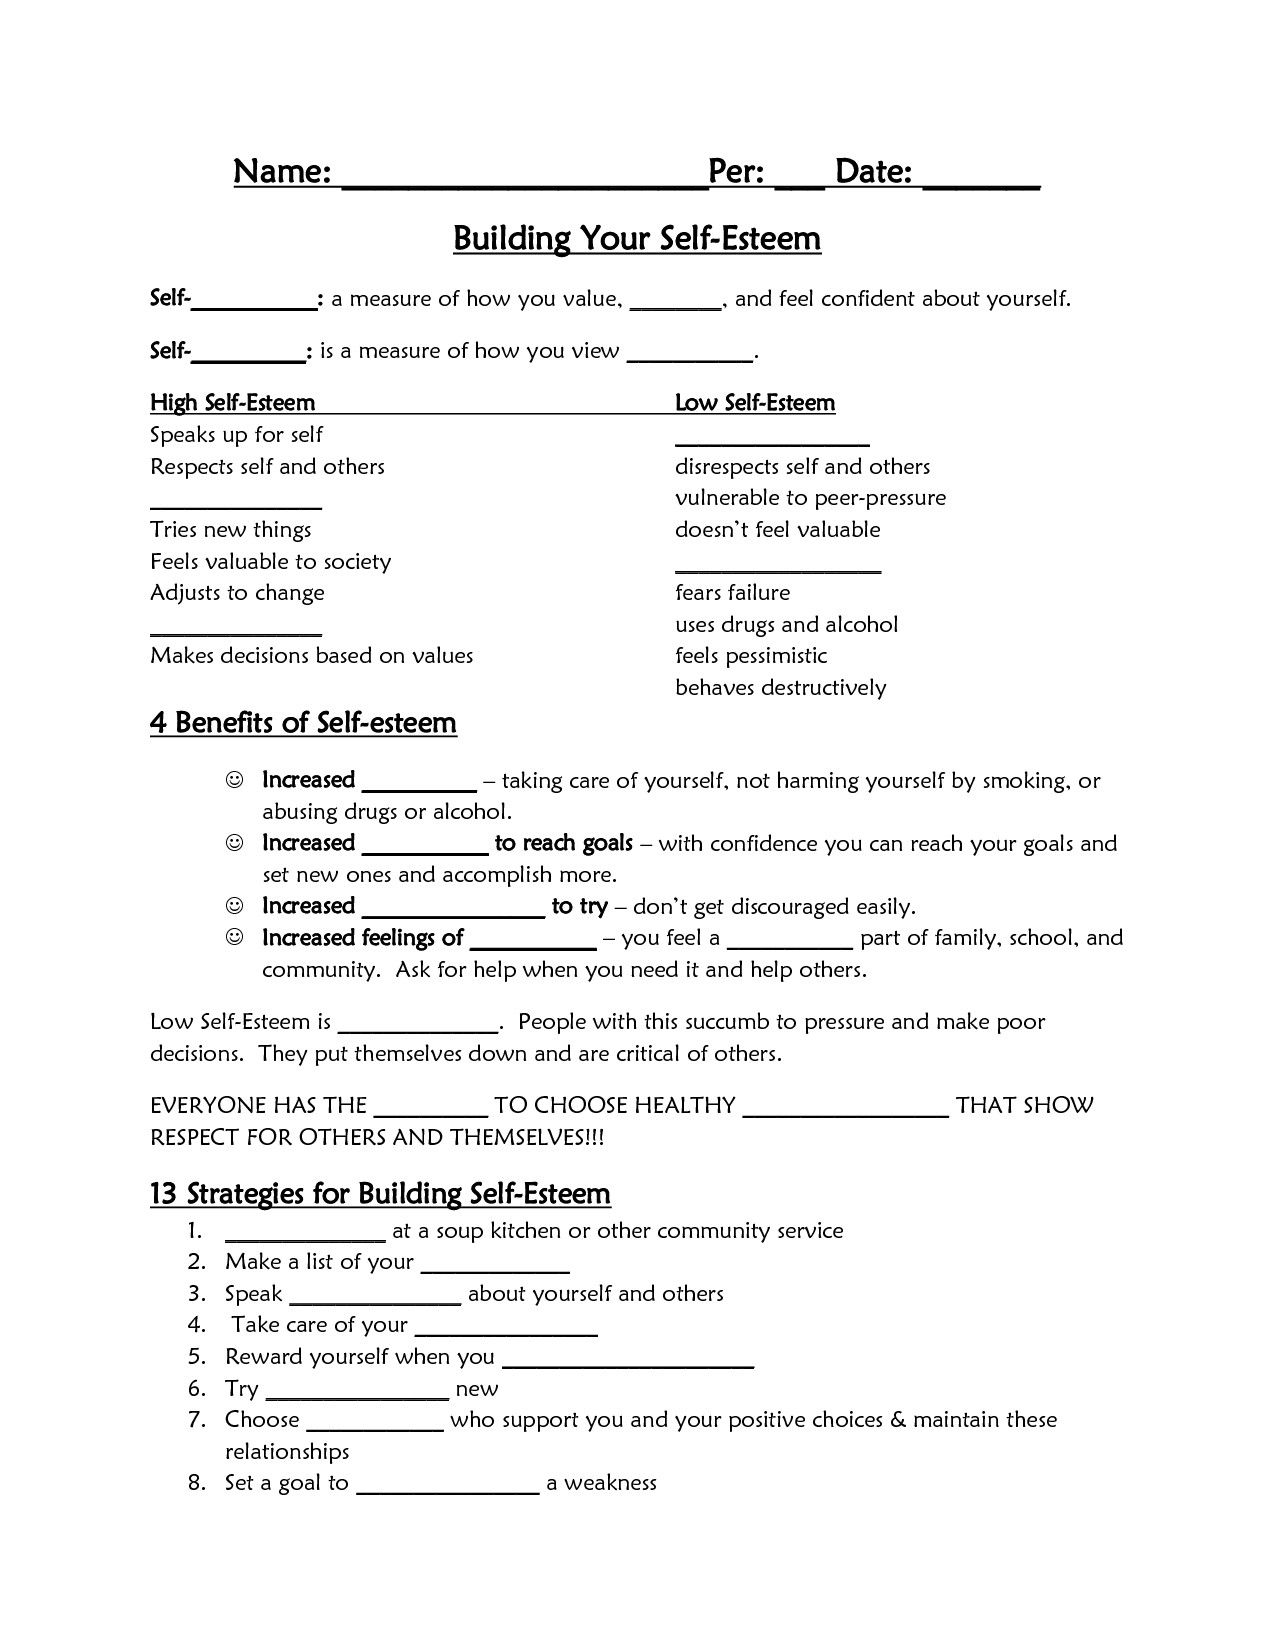 Self Esteem Printable Worksheets top Ten Floo Y Wong Artist — Self Esteem Worksheets